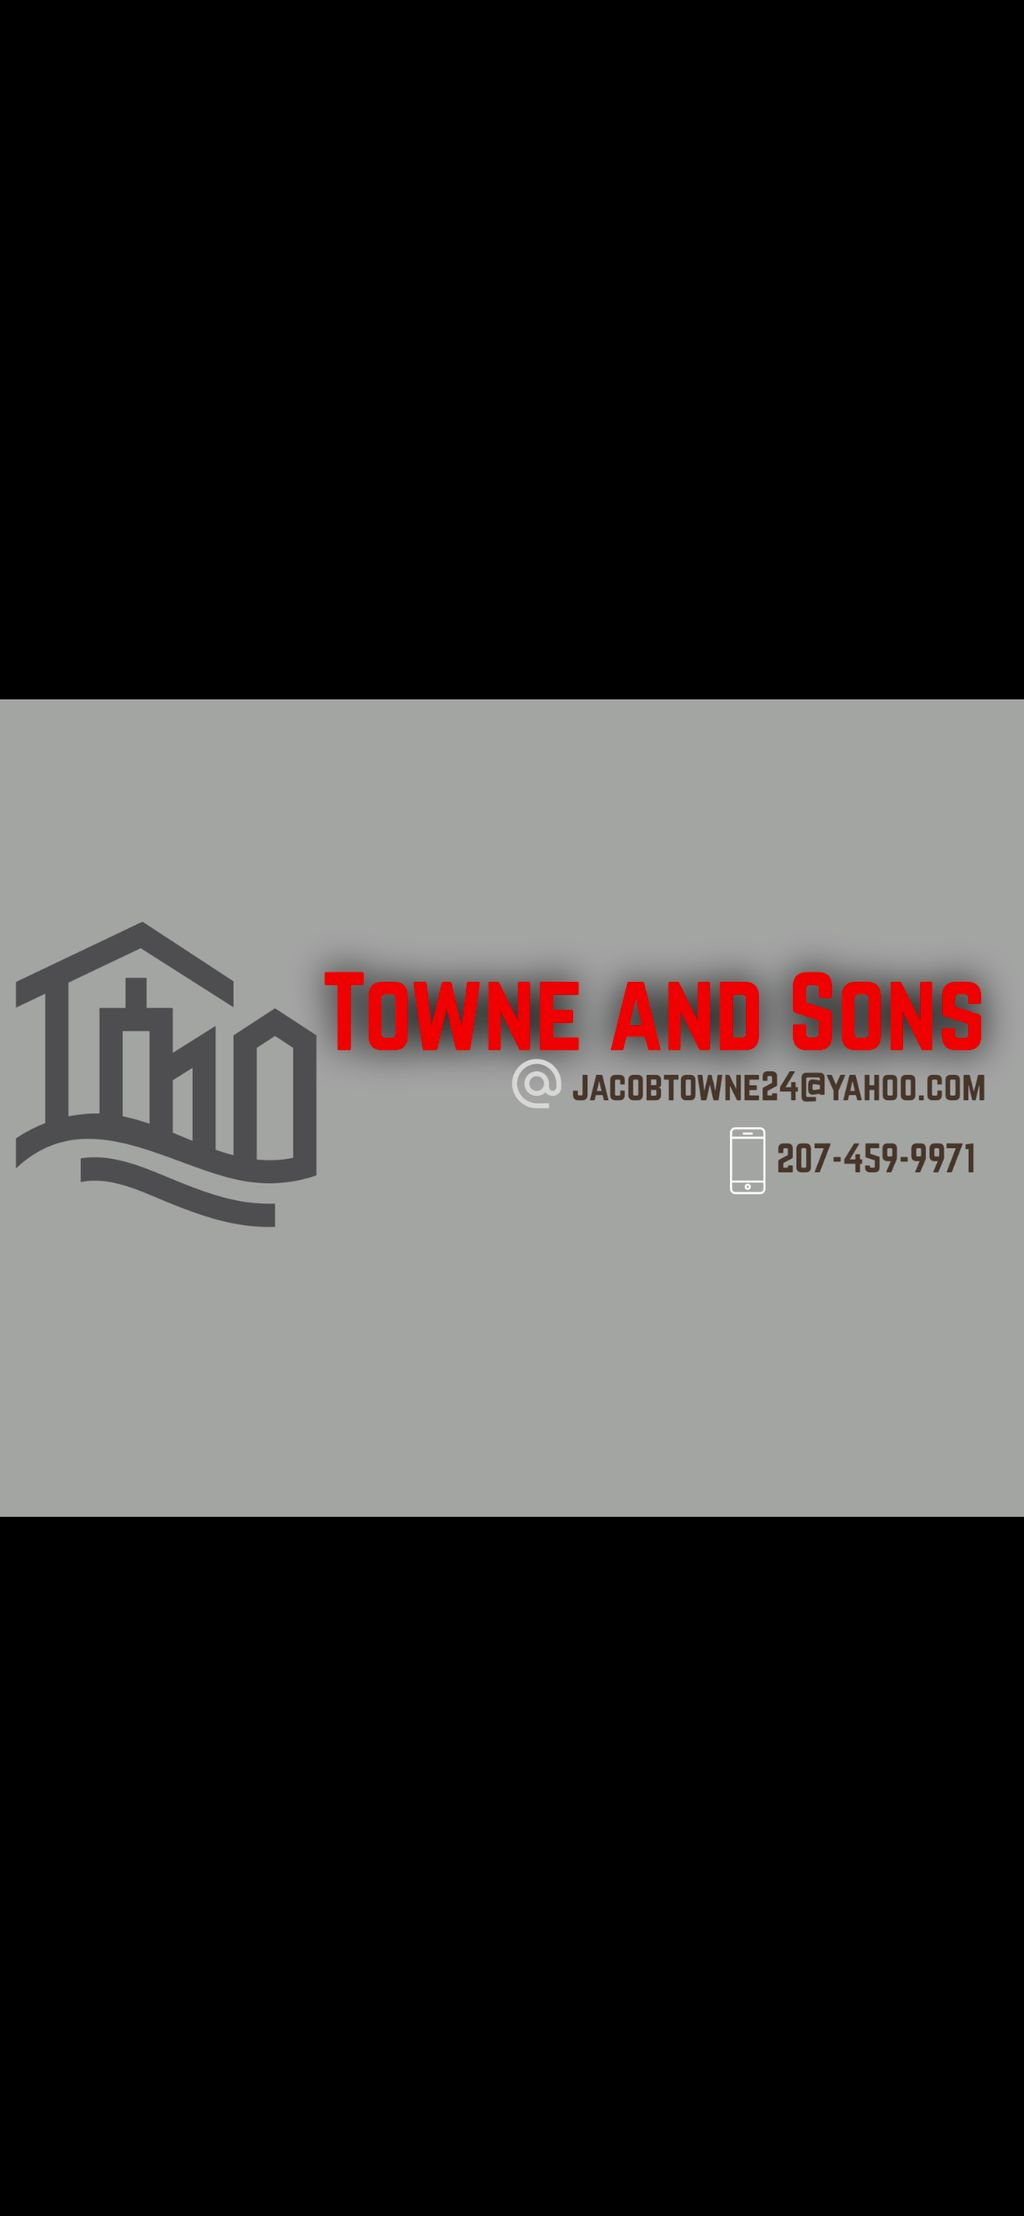 Towne and Sons